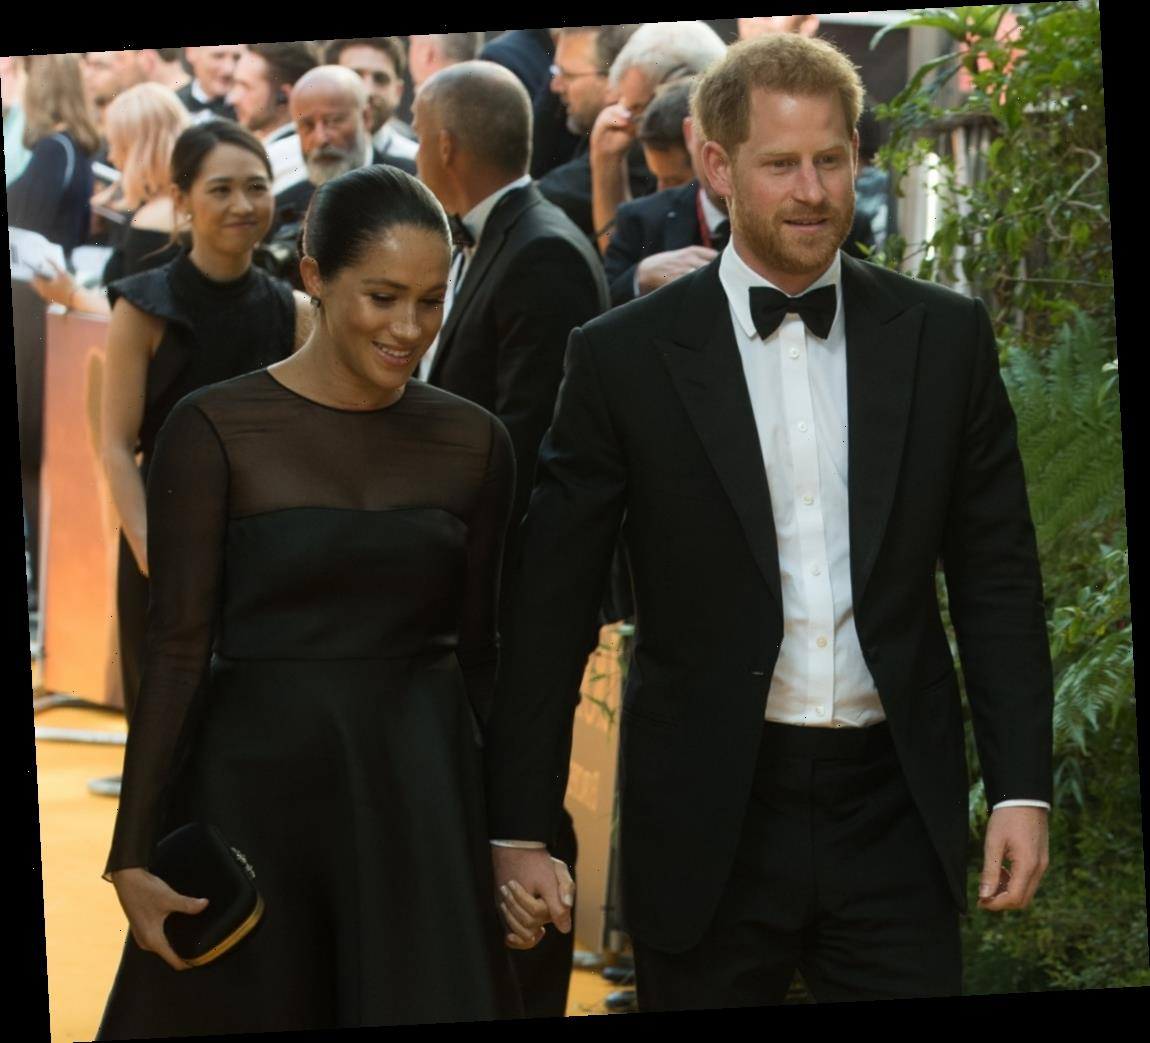 VF: With the Sussexes' deal, Netflix 'literally bought a member of the royal family'